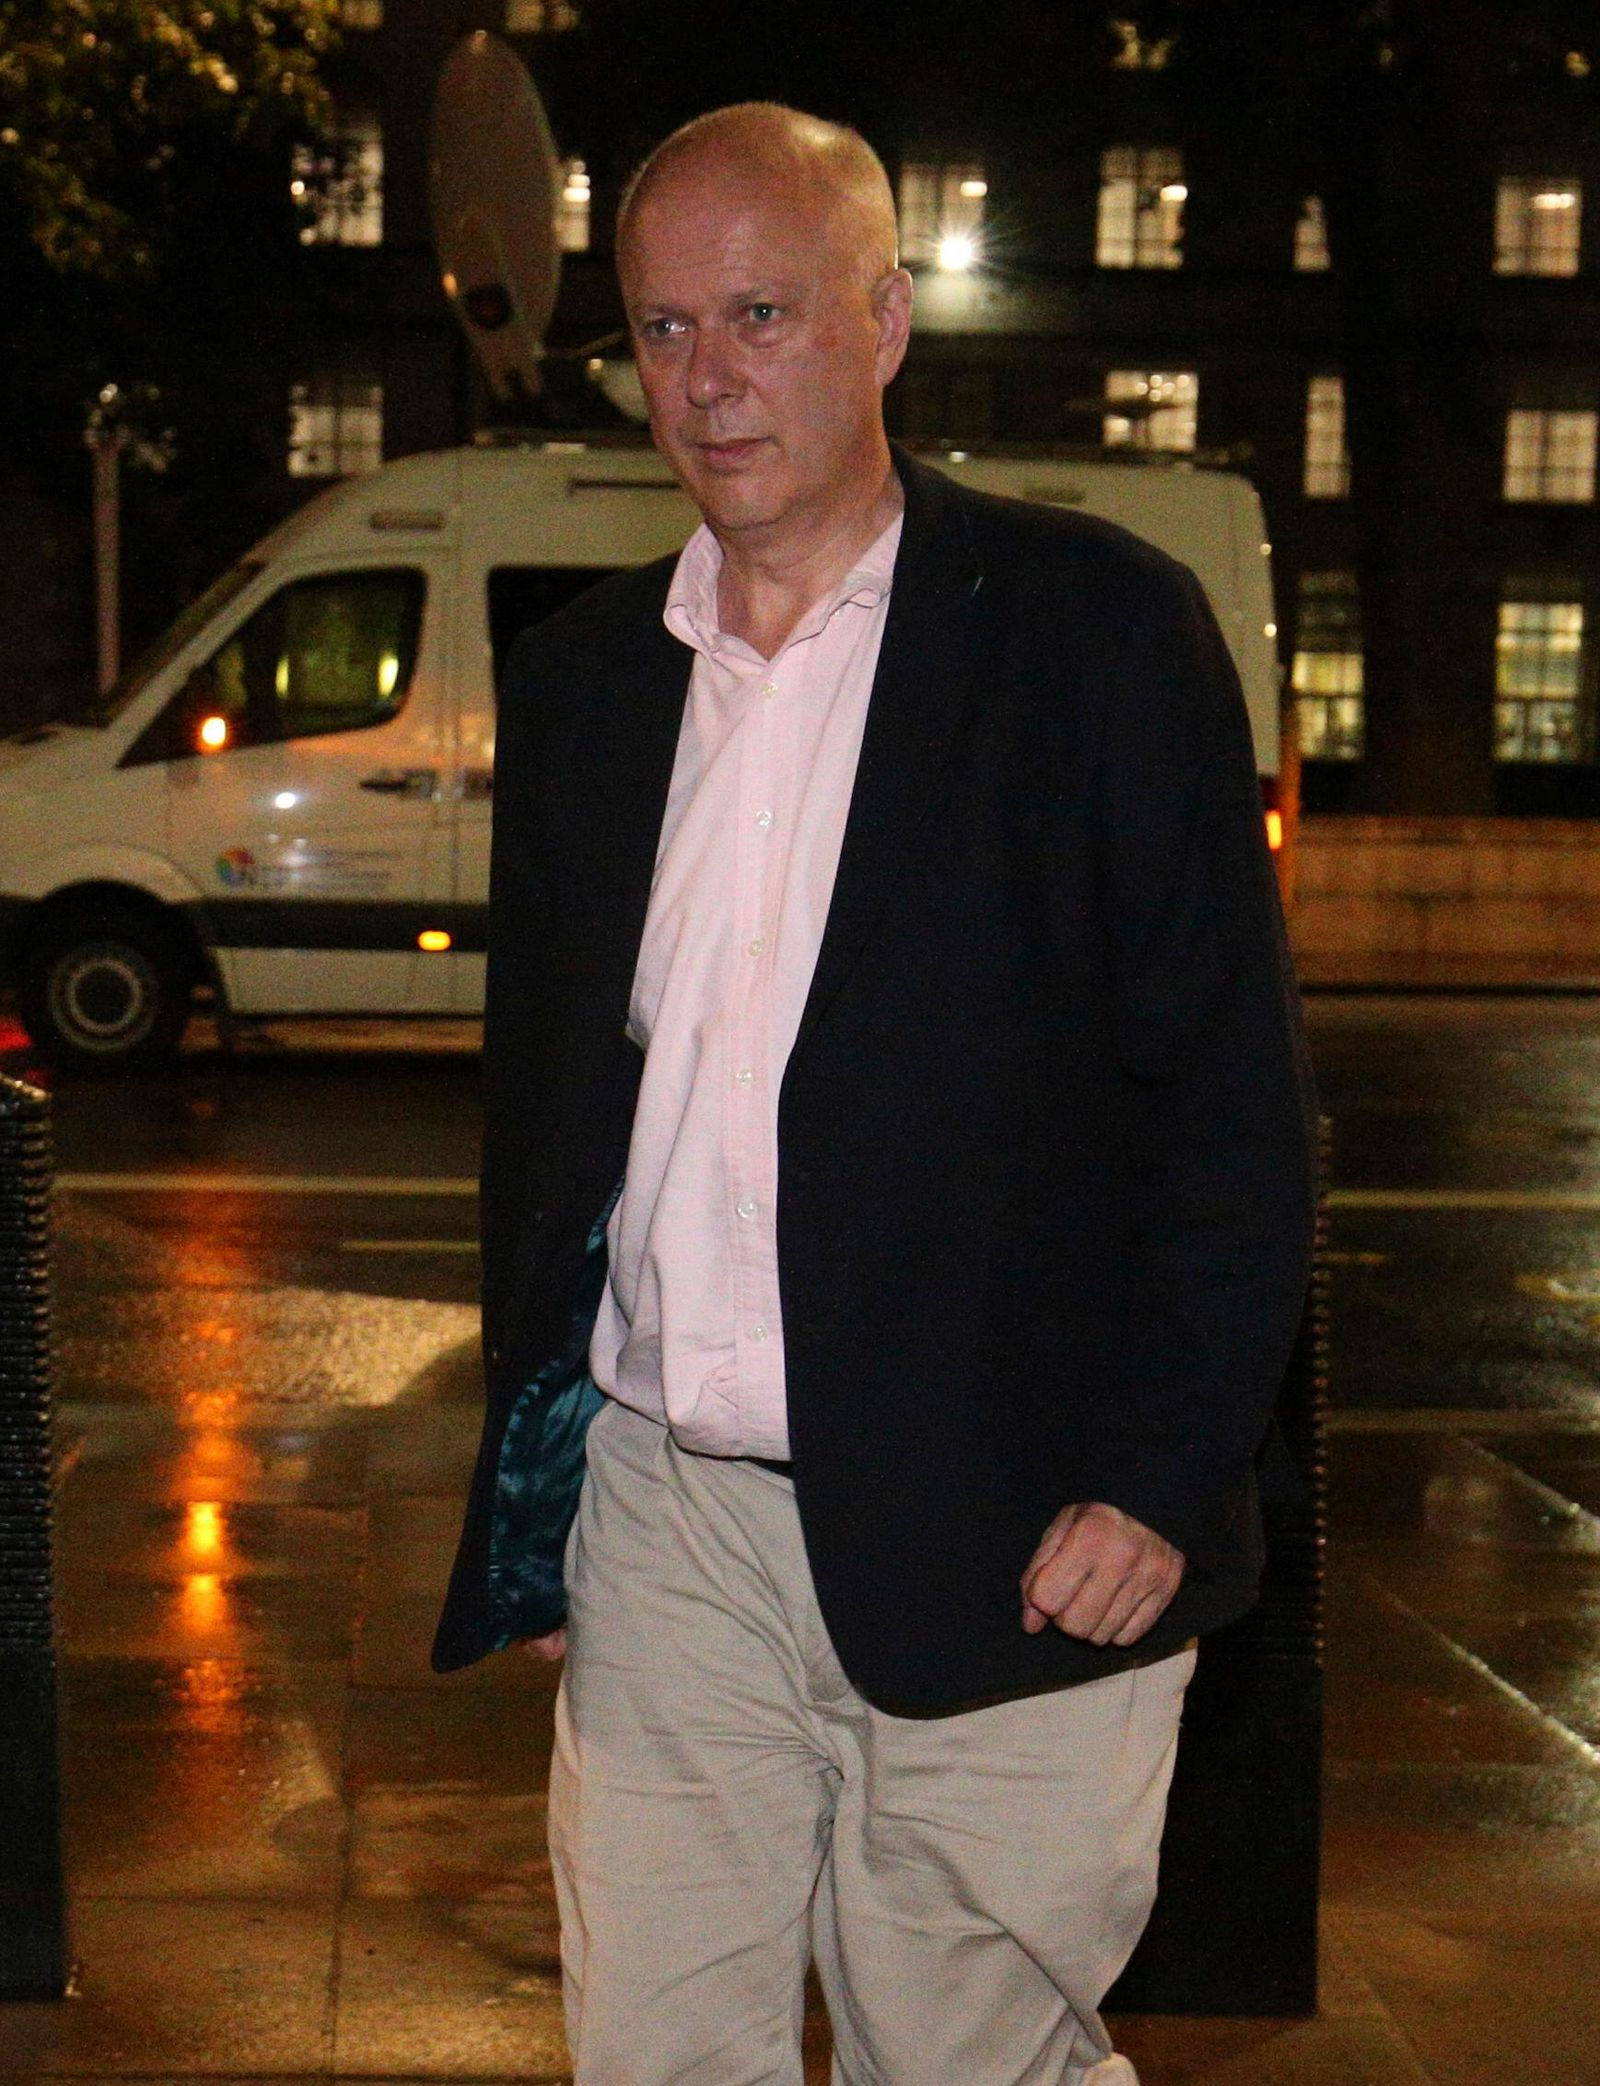 Britain's Transport Secretary Chris Grayling arrives at the Cabinet Office in Whitehall, London, Friday, July 19, 2019, ahead of an emergency Cobra meeting which has been called after the British oil tanker Stena Impero was seized in the Strait of Hormuz. The seizing of the British tanker marked perhaps the most significant escalation since tensions between Iran and the West began rising in May. (Jonathan Brady/PA via AP)